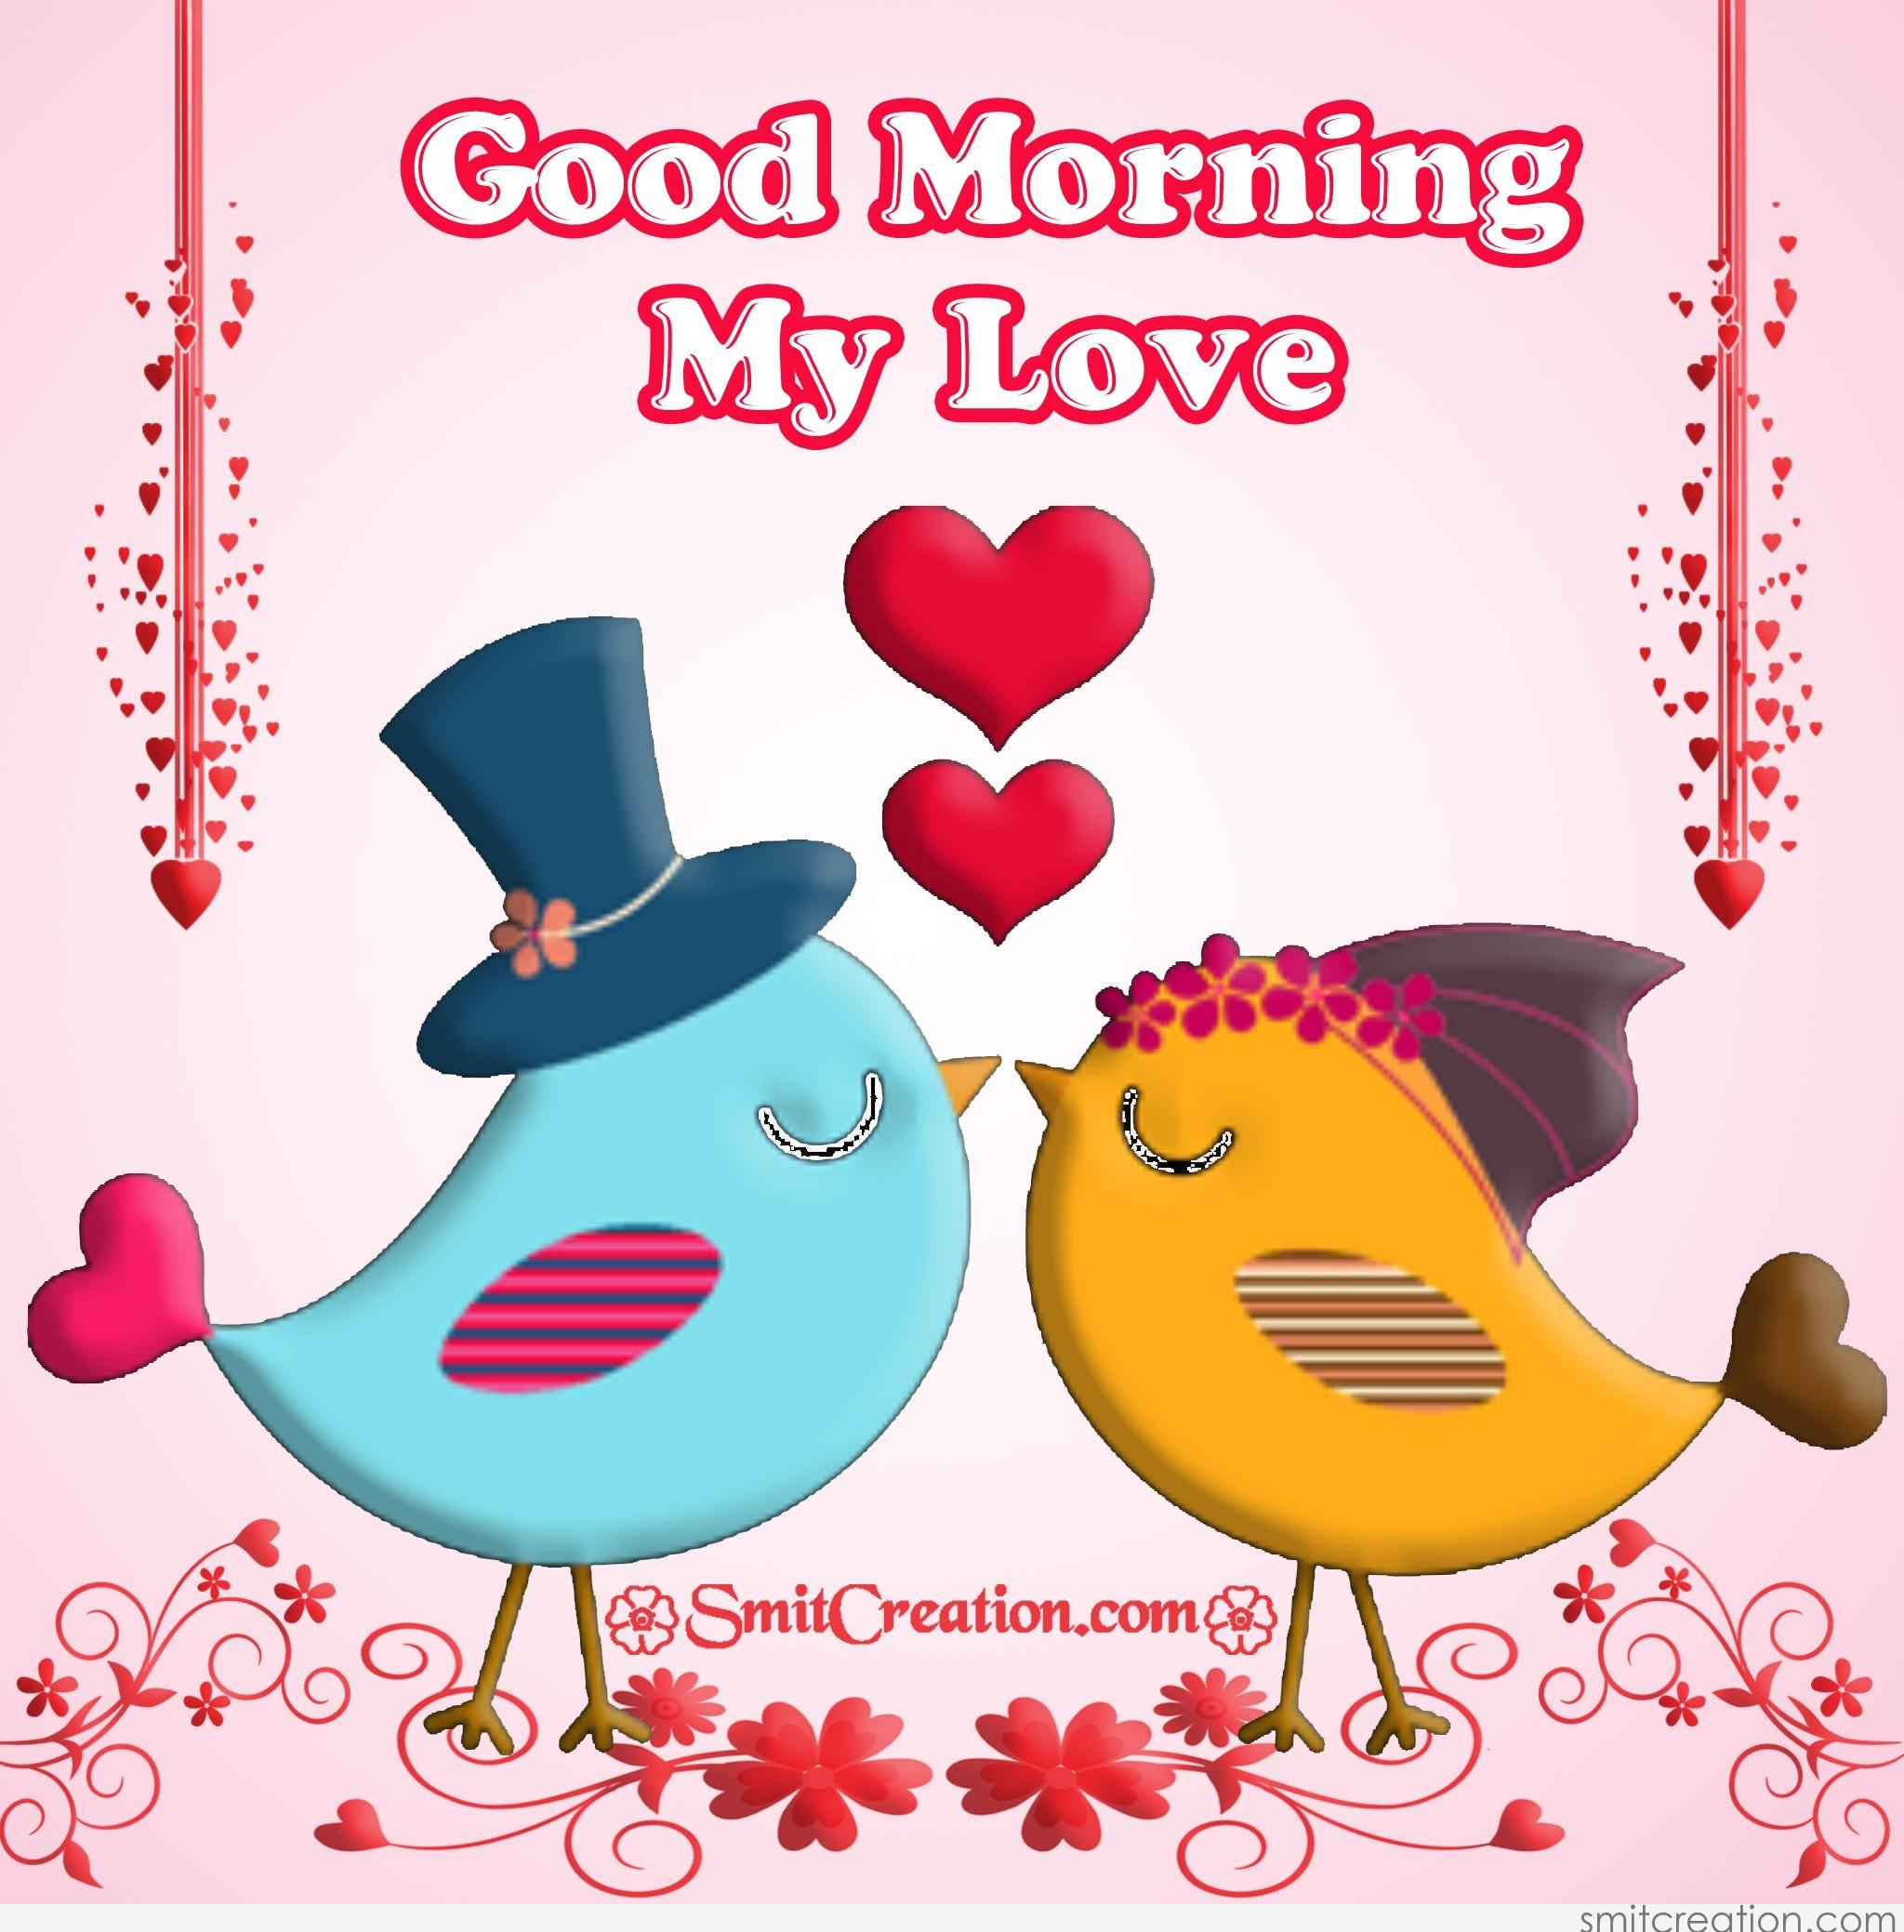 Good Morning My Love Happy Friday : Good morning my love smitcreation